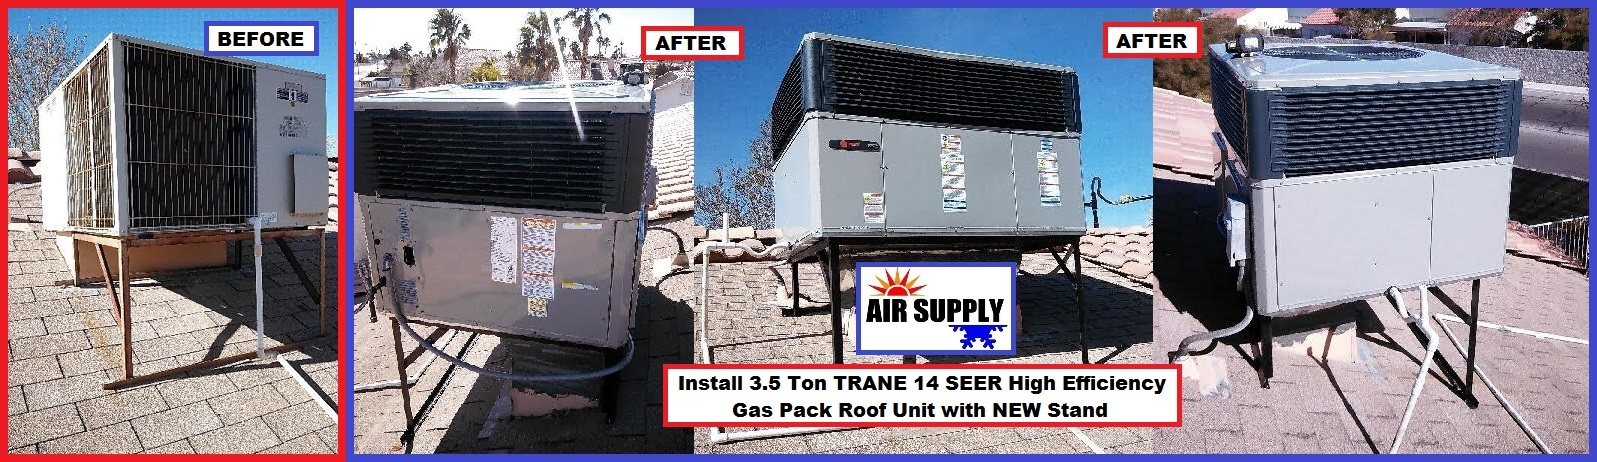 Valley Spruce 3.5 Ton Trane GP - with words